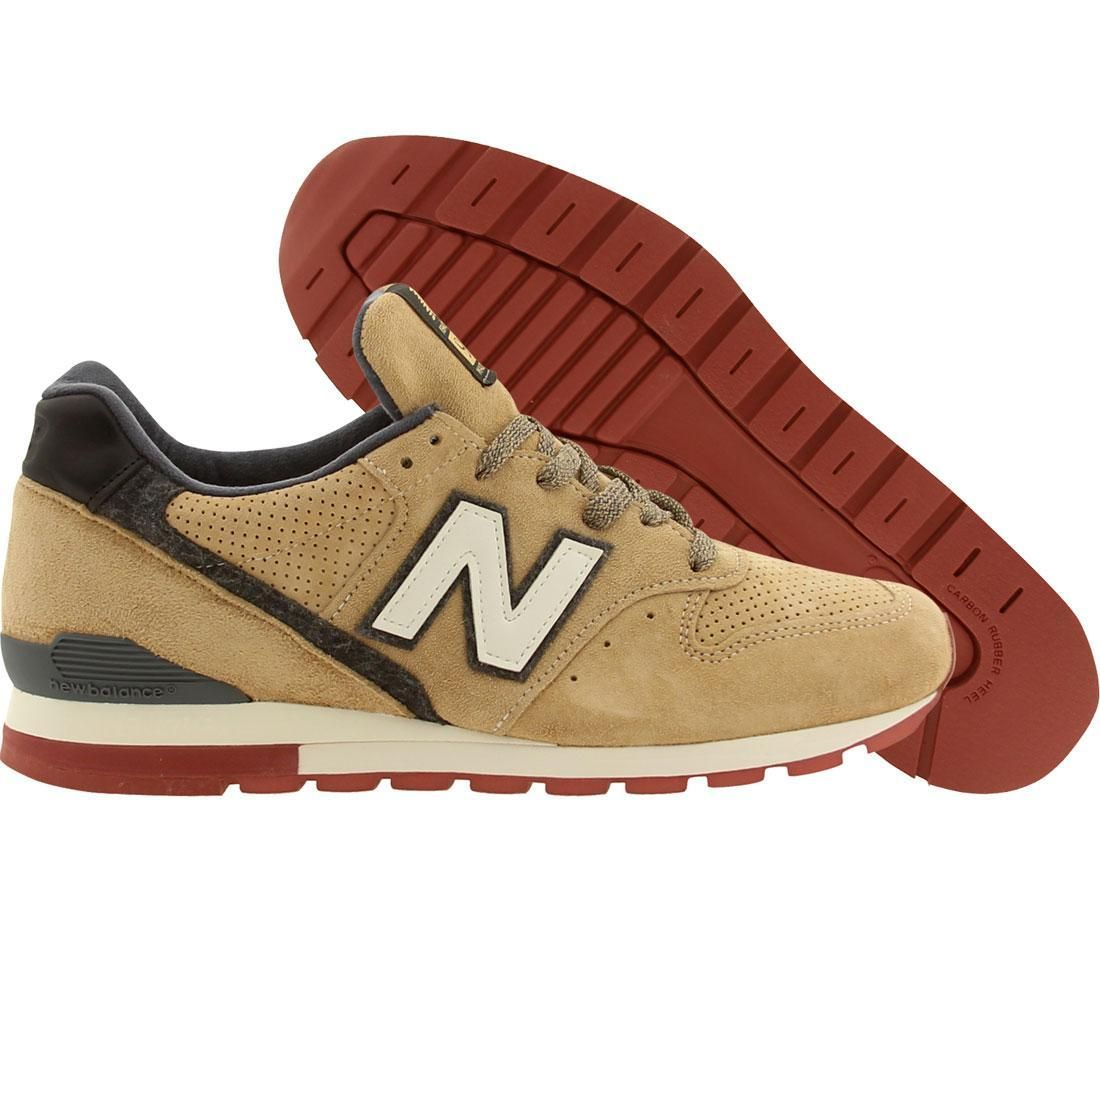 New Balance Men M996PR Distinct Authors - Made In USA (brown / gray) Shoes M996PR | PickYourShoes.com